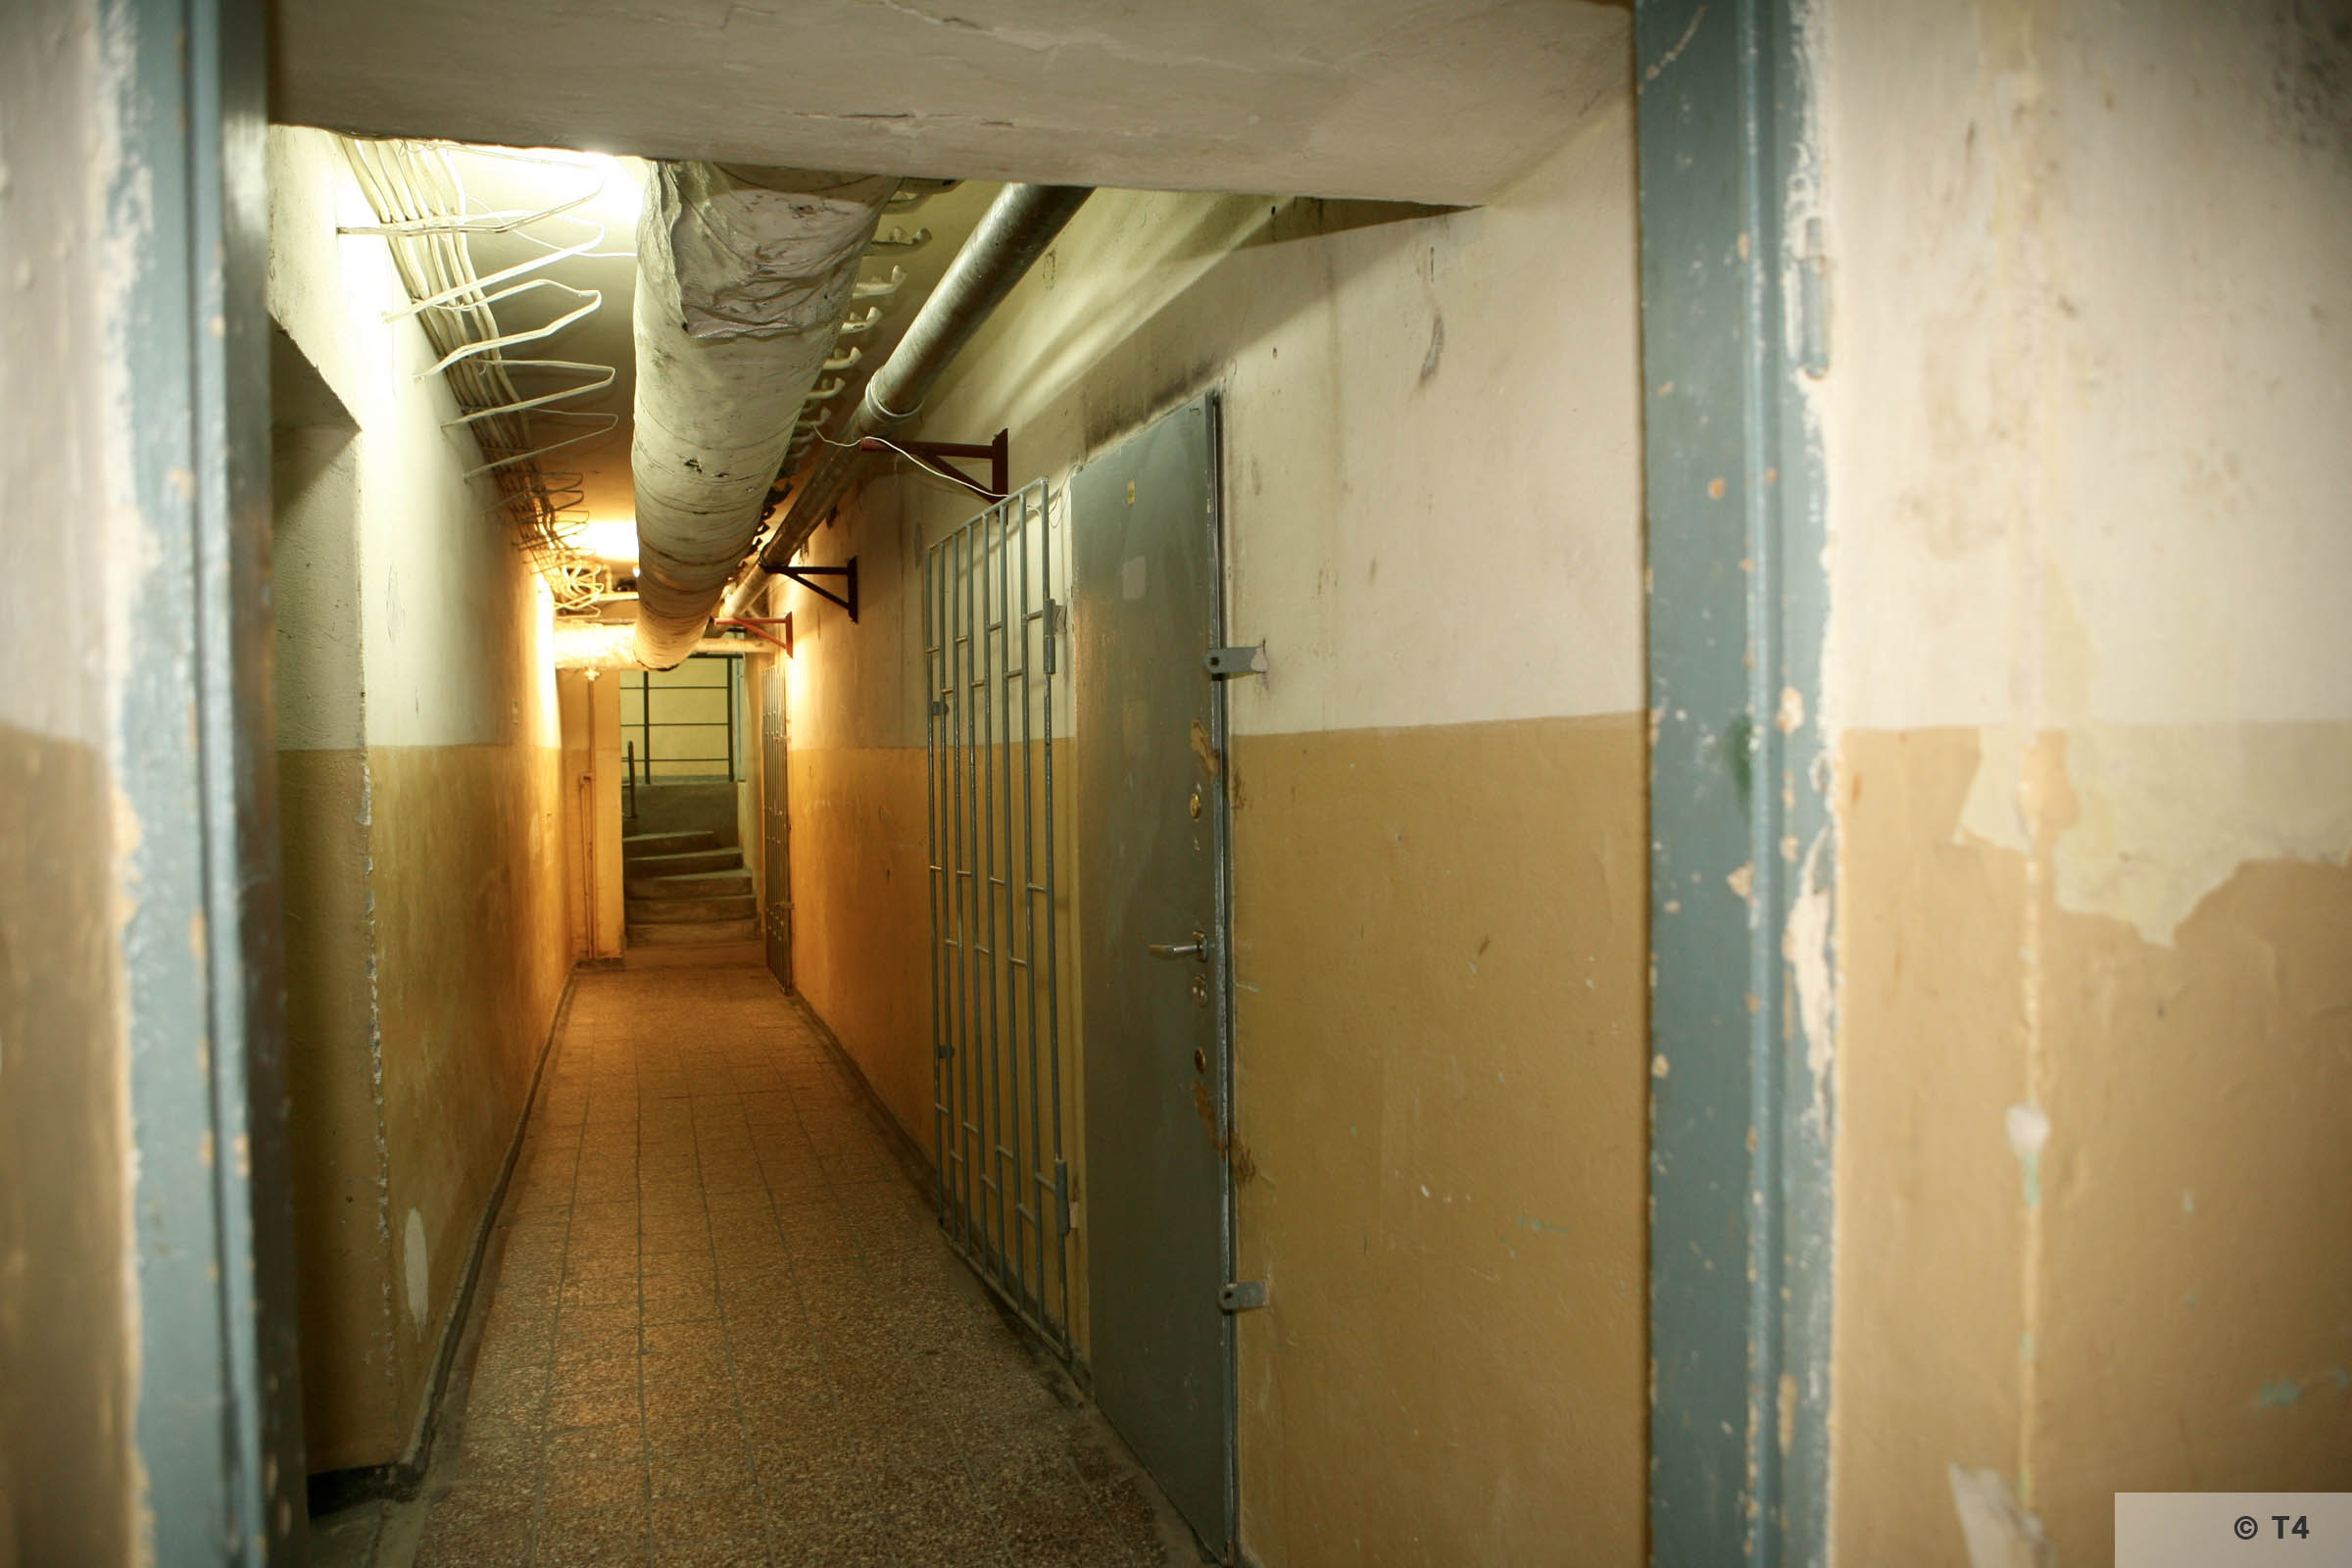 Cellar of former Gestapo headquarters in Katowice. 2007 T4 5735